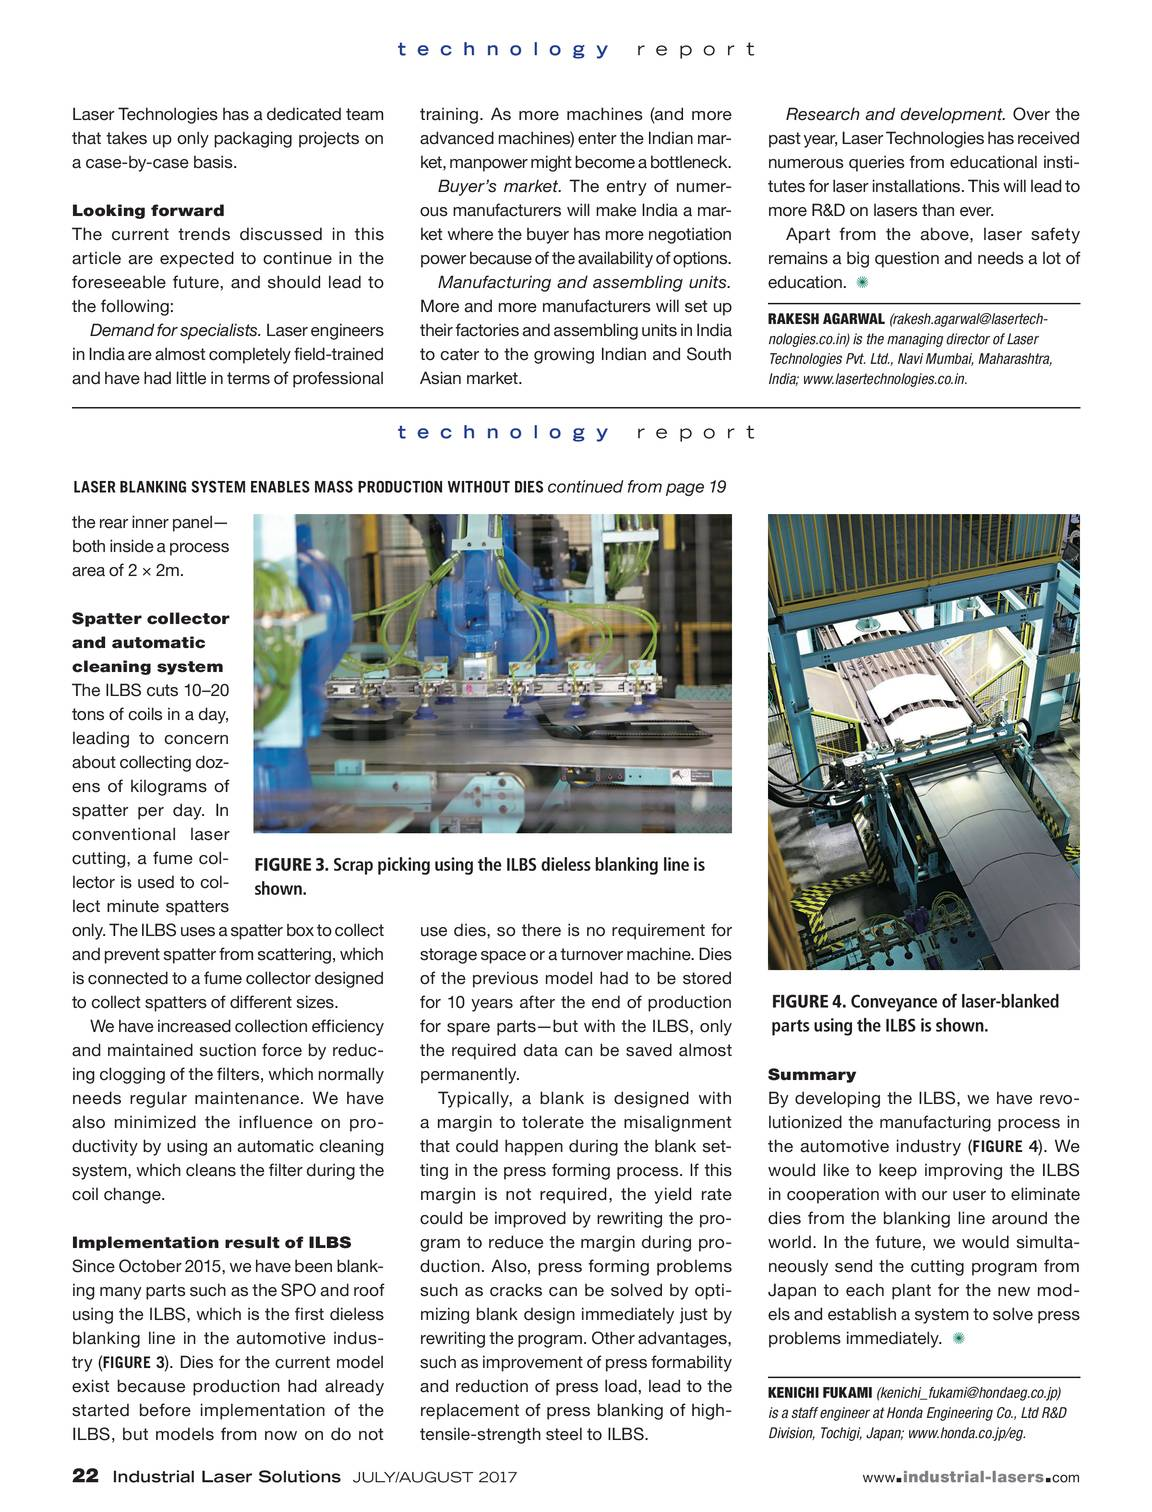 Industrial Laser Solutions - July/August 2017 - page 21